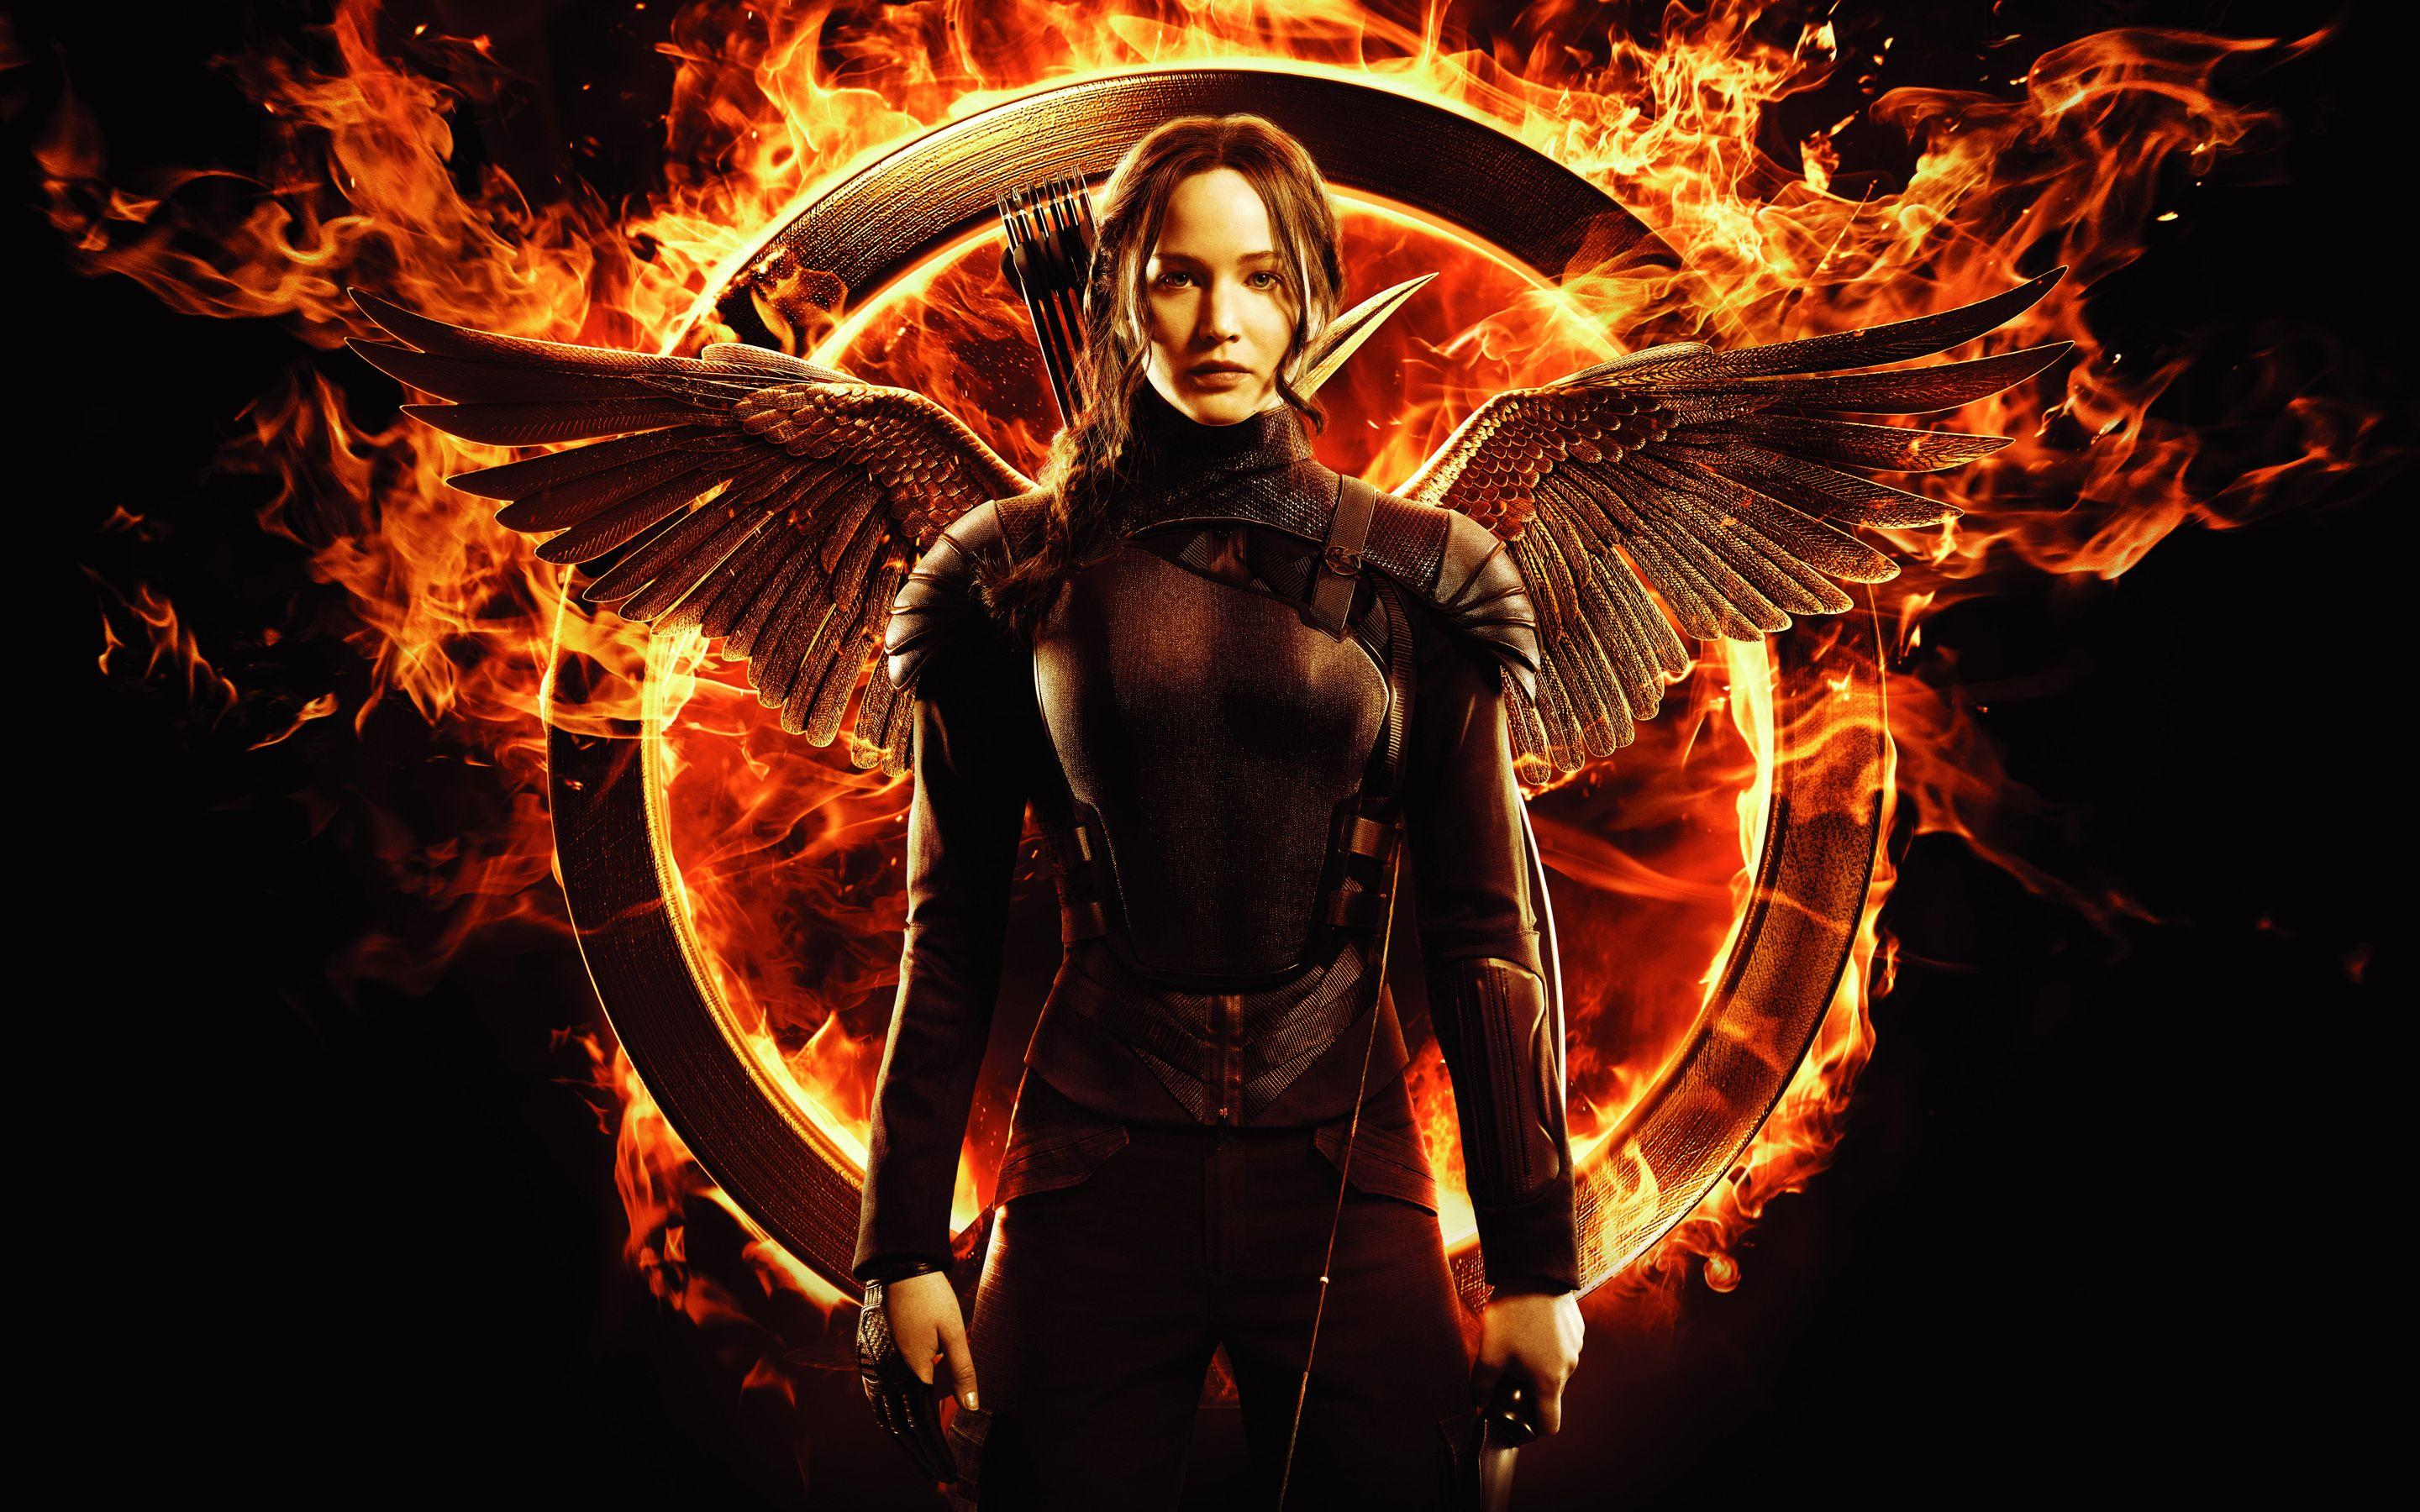 The Hunger Games Mockingjay Wallpapers - Wallpaper Cave